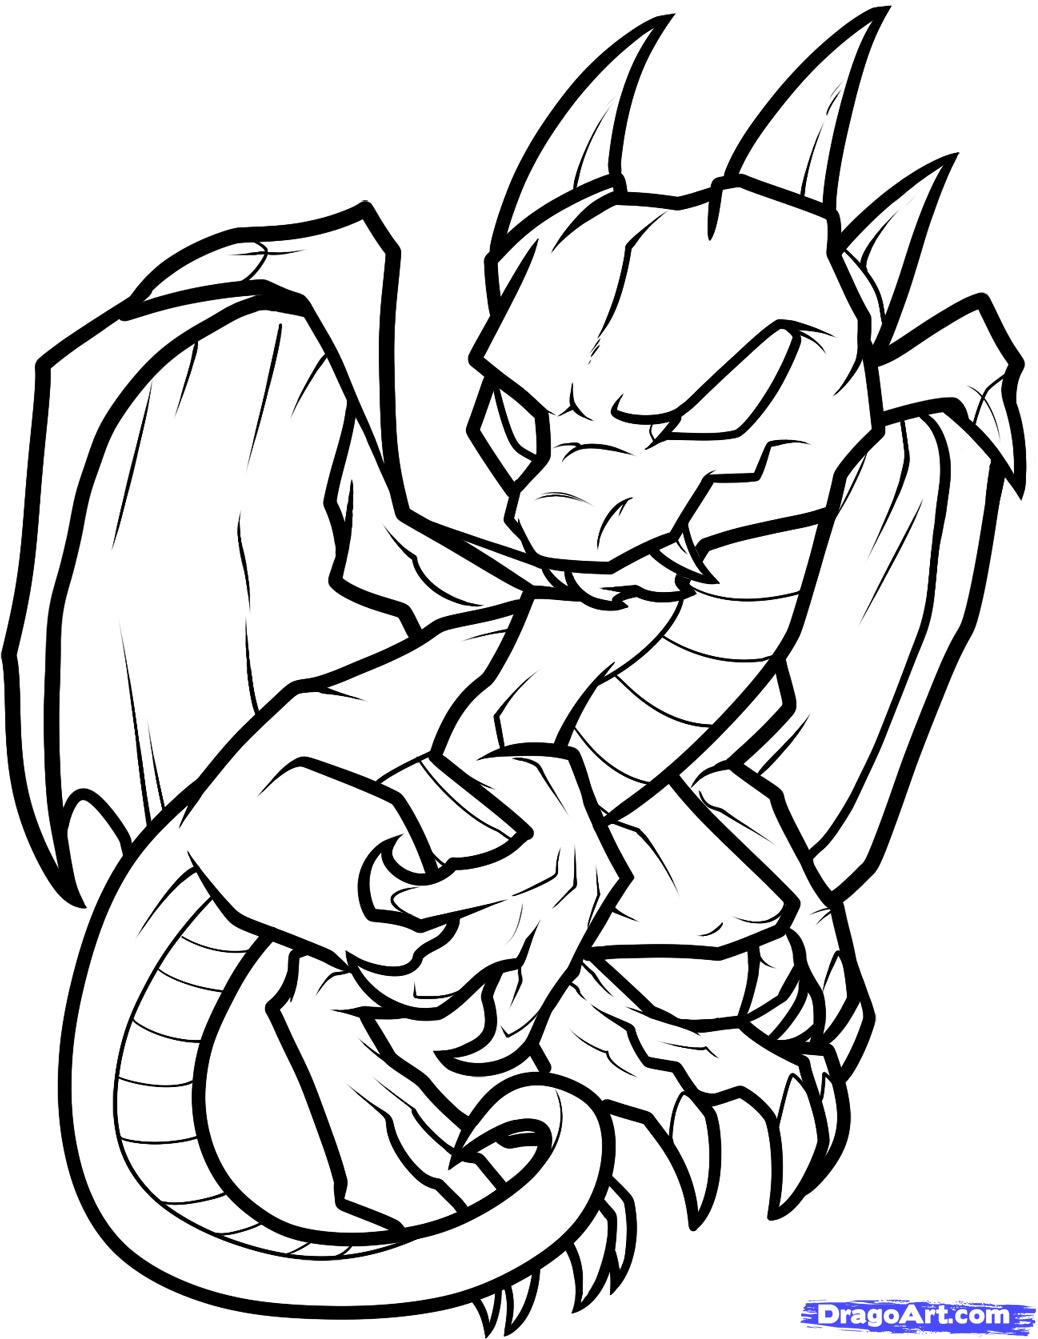 printable dragon pictures baby dragon coloring pages to download and print for free dragon printable pictures